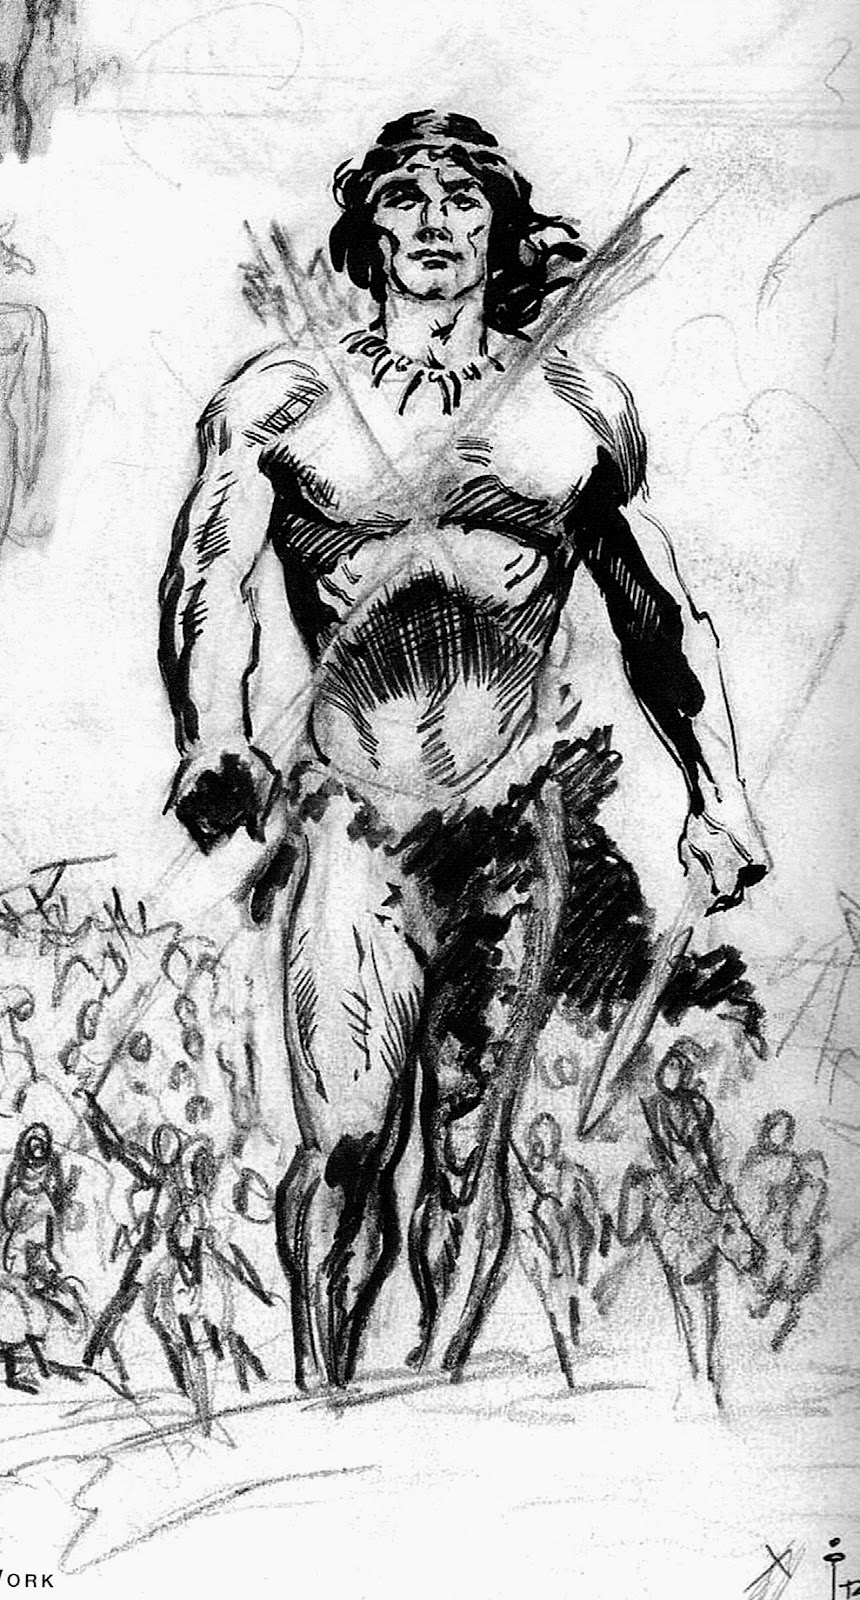 Cap'n's Comics: Some Rough Stuff by Frazetta